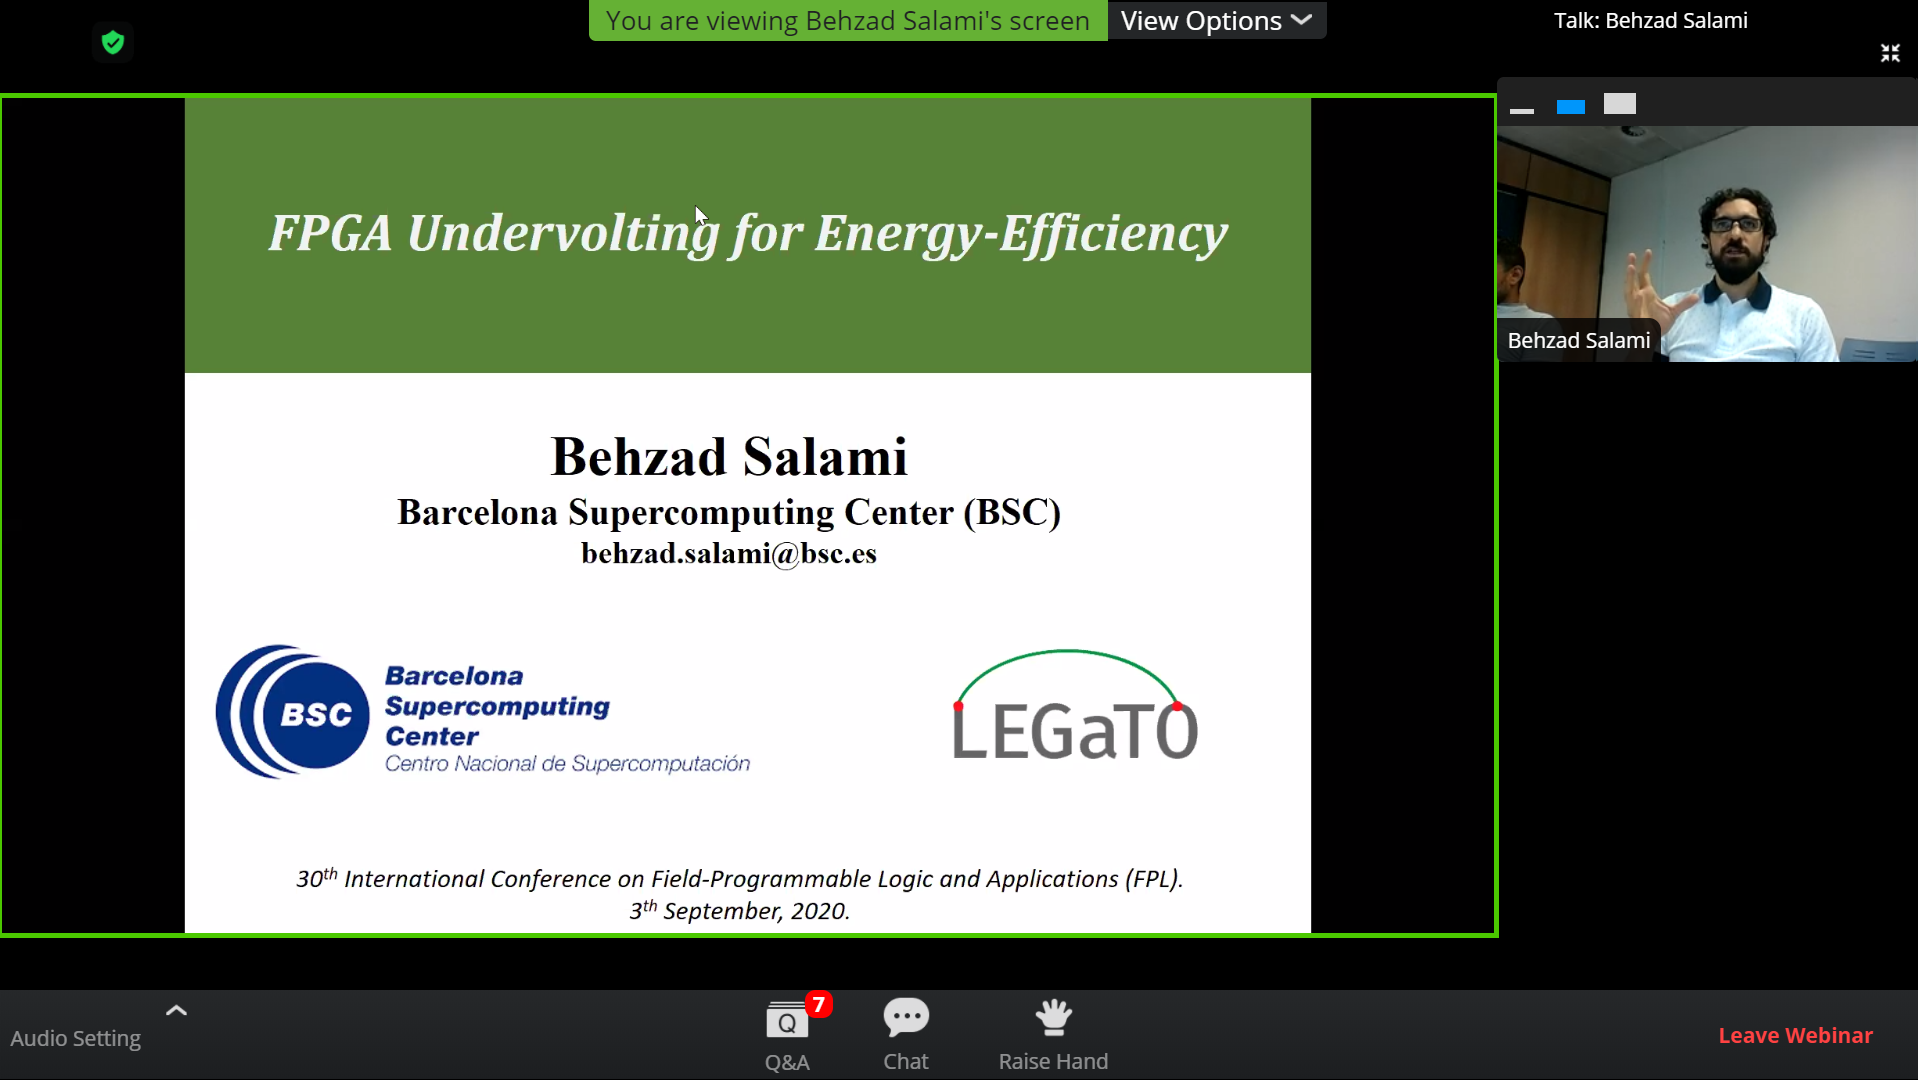 Behzad Salami presents during the tutorial